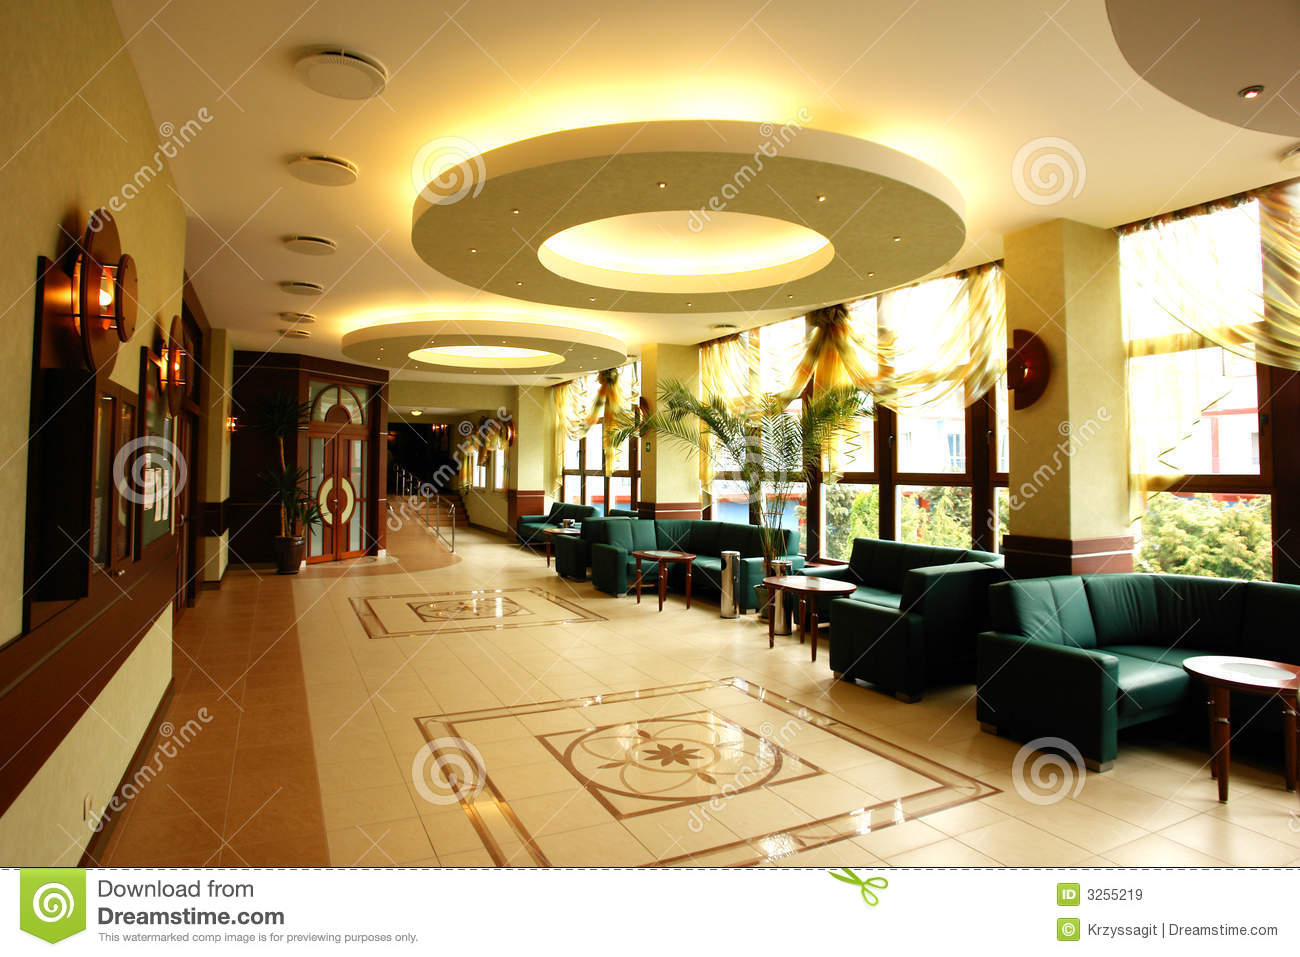 open hotel reception area royalty free stock images   image 3255219